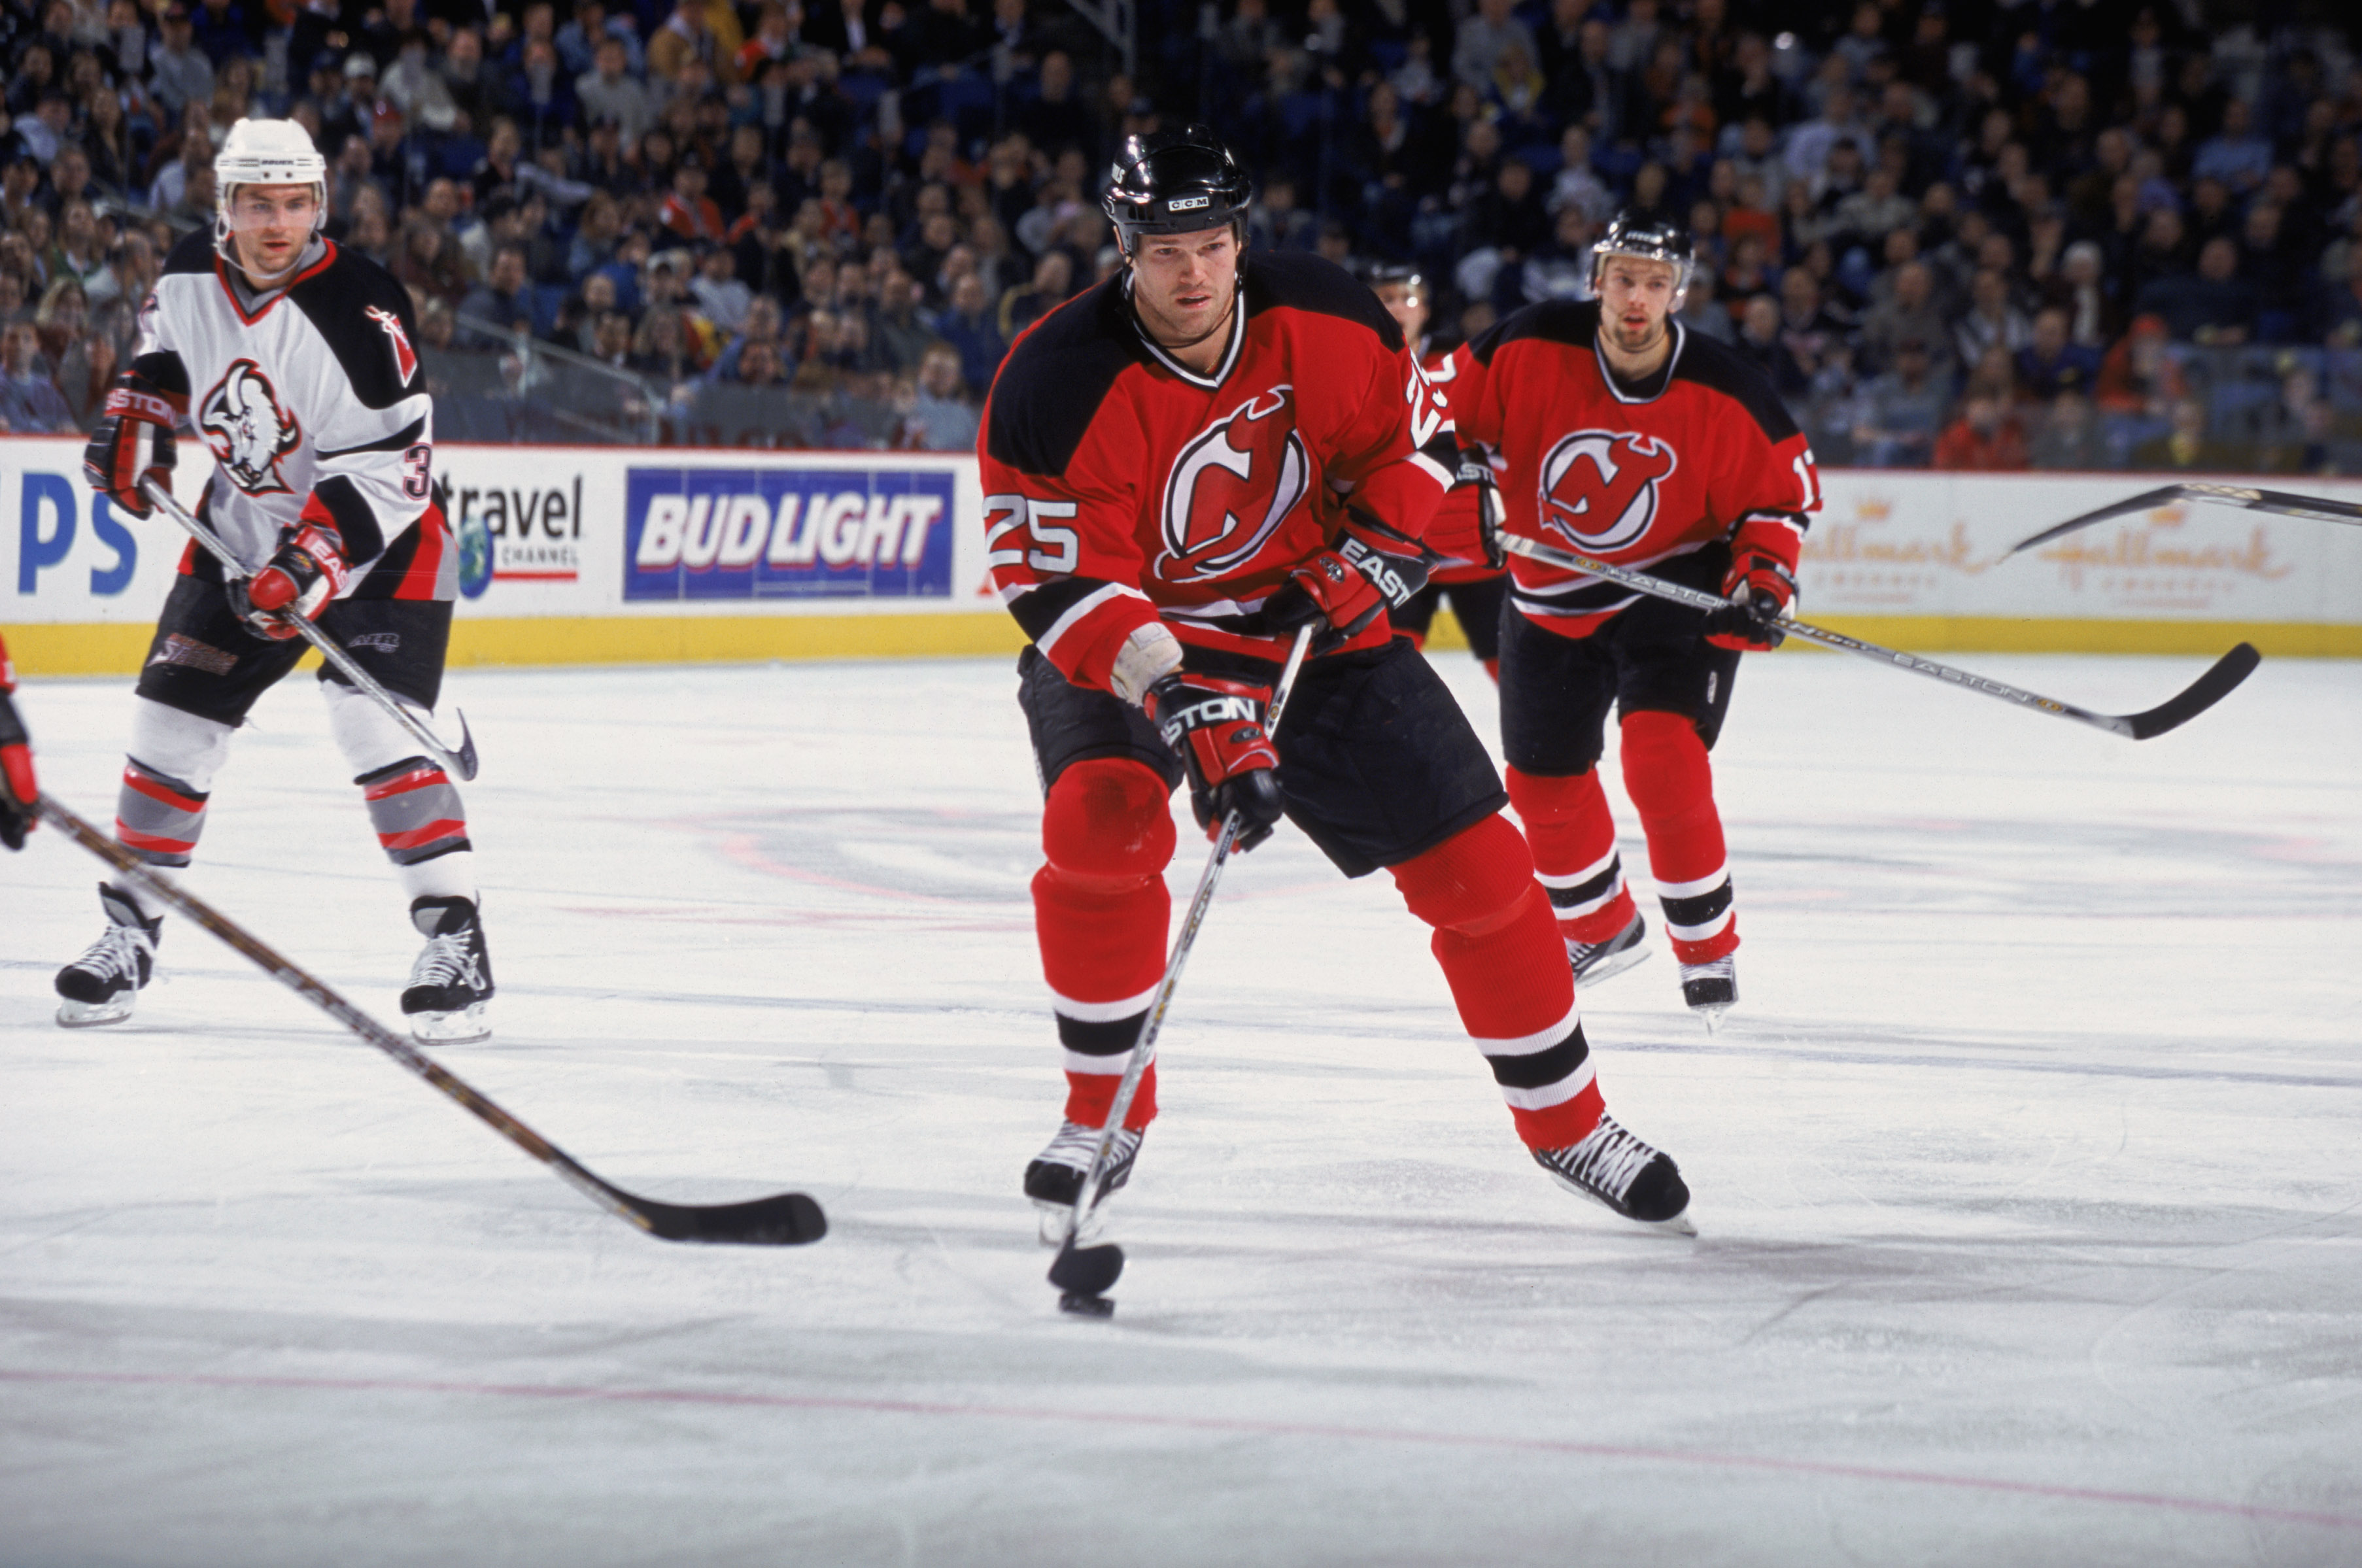 12 Feb 2002:  Jason Arnot #25 of the New Jersey Devils and teammate, right wing Petr Sykora #17, skate on the ice during the NHL game against the Buffalo Sabres at the HSBC Arena in Buffalo, New York. The Devils tied the Sabres, 2-2.   \ Mandatory Copyrig